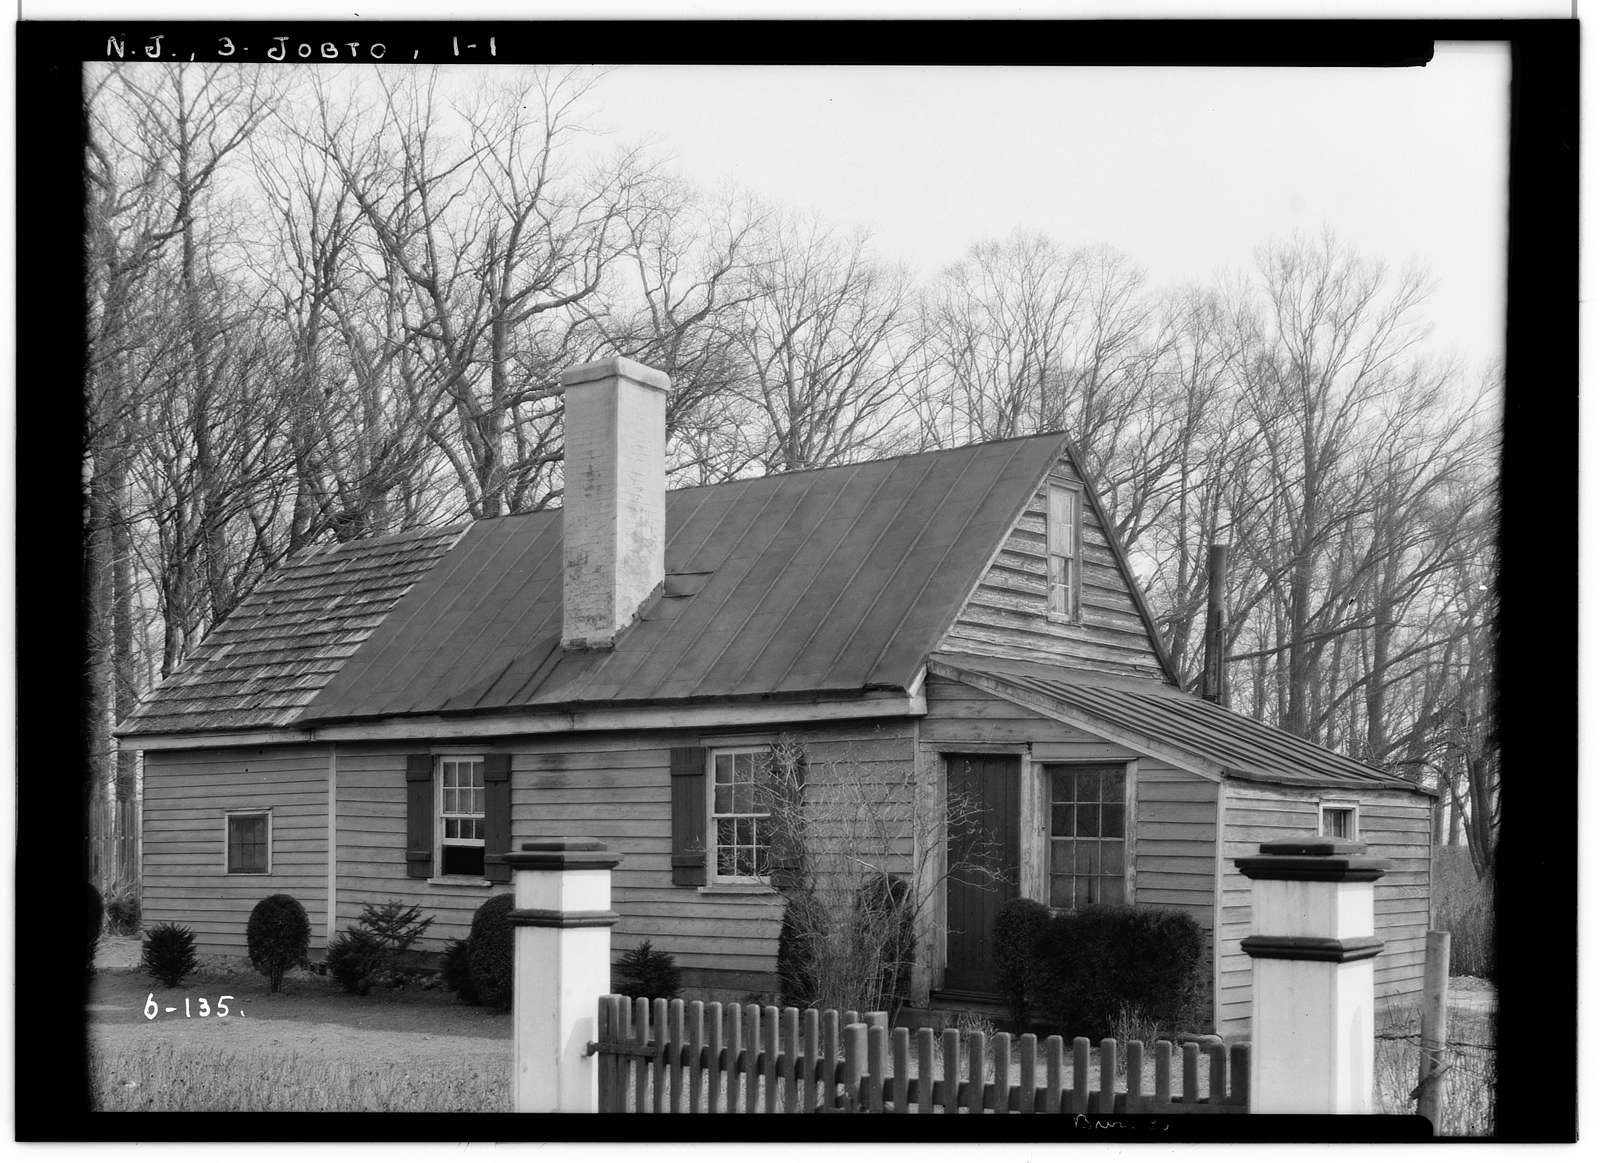 Newbold-Hoffman House, Monmouth Road, Jobstown, Burlington County, NJ